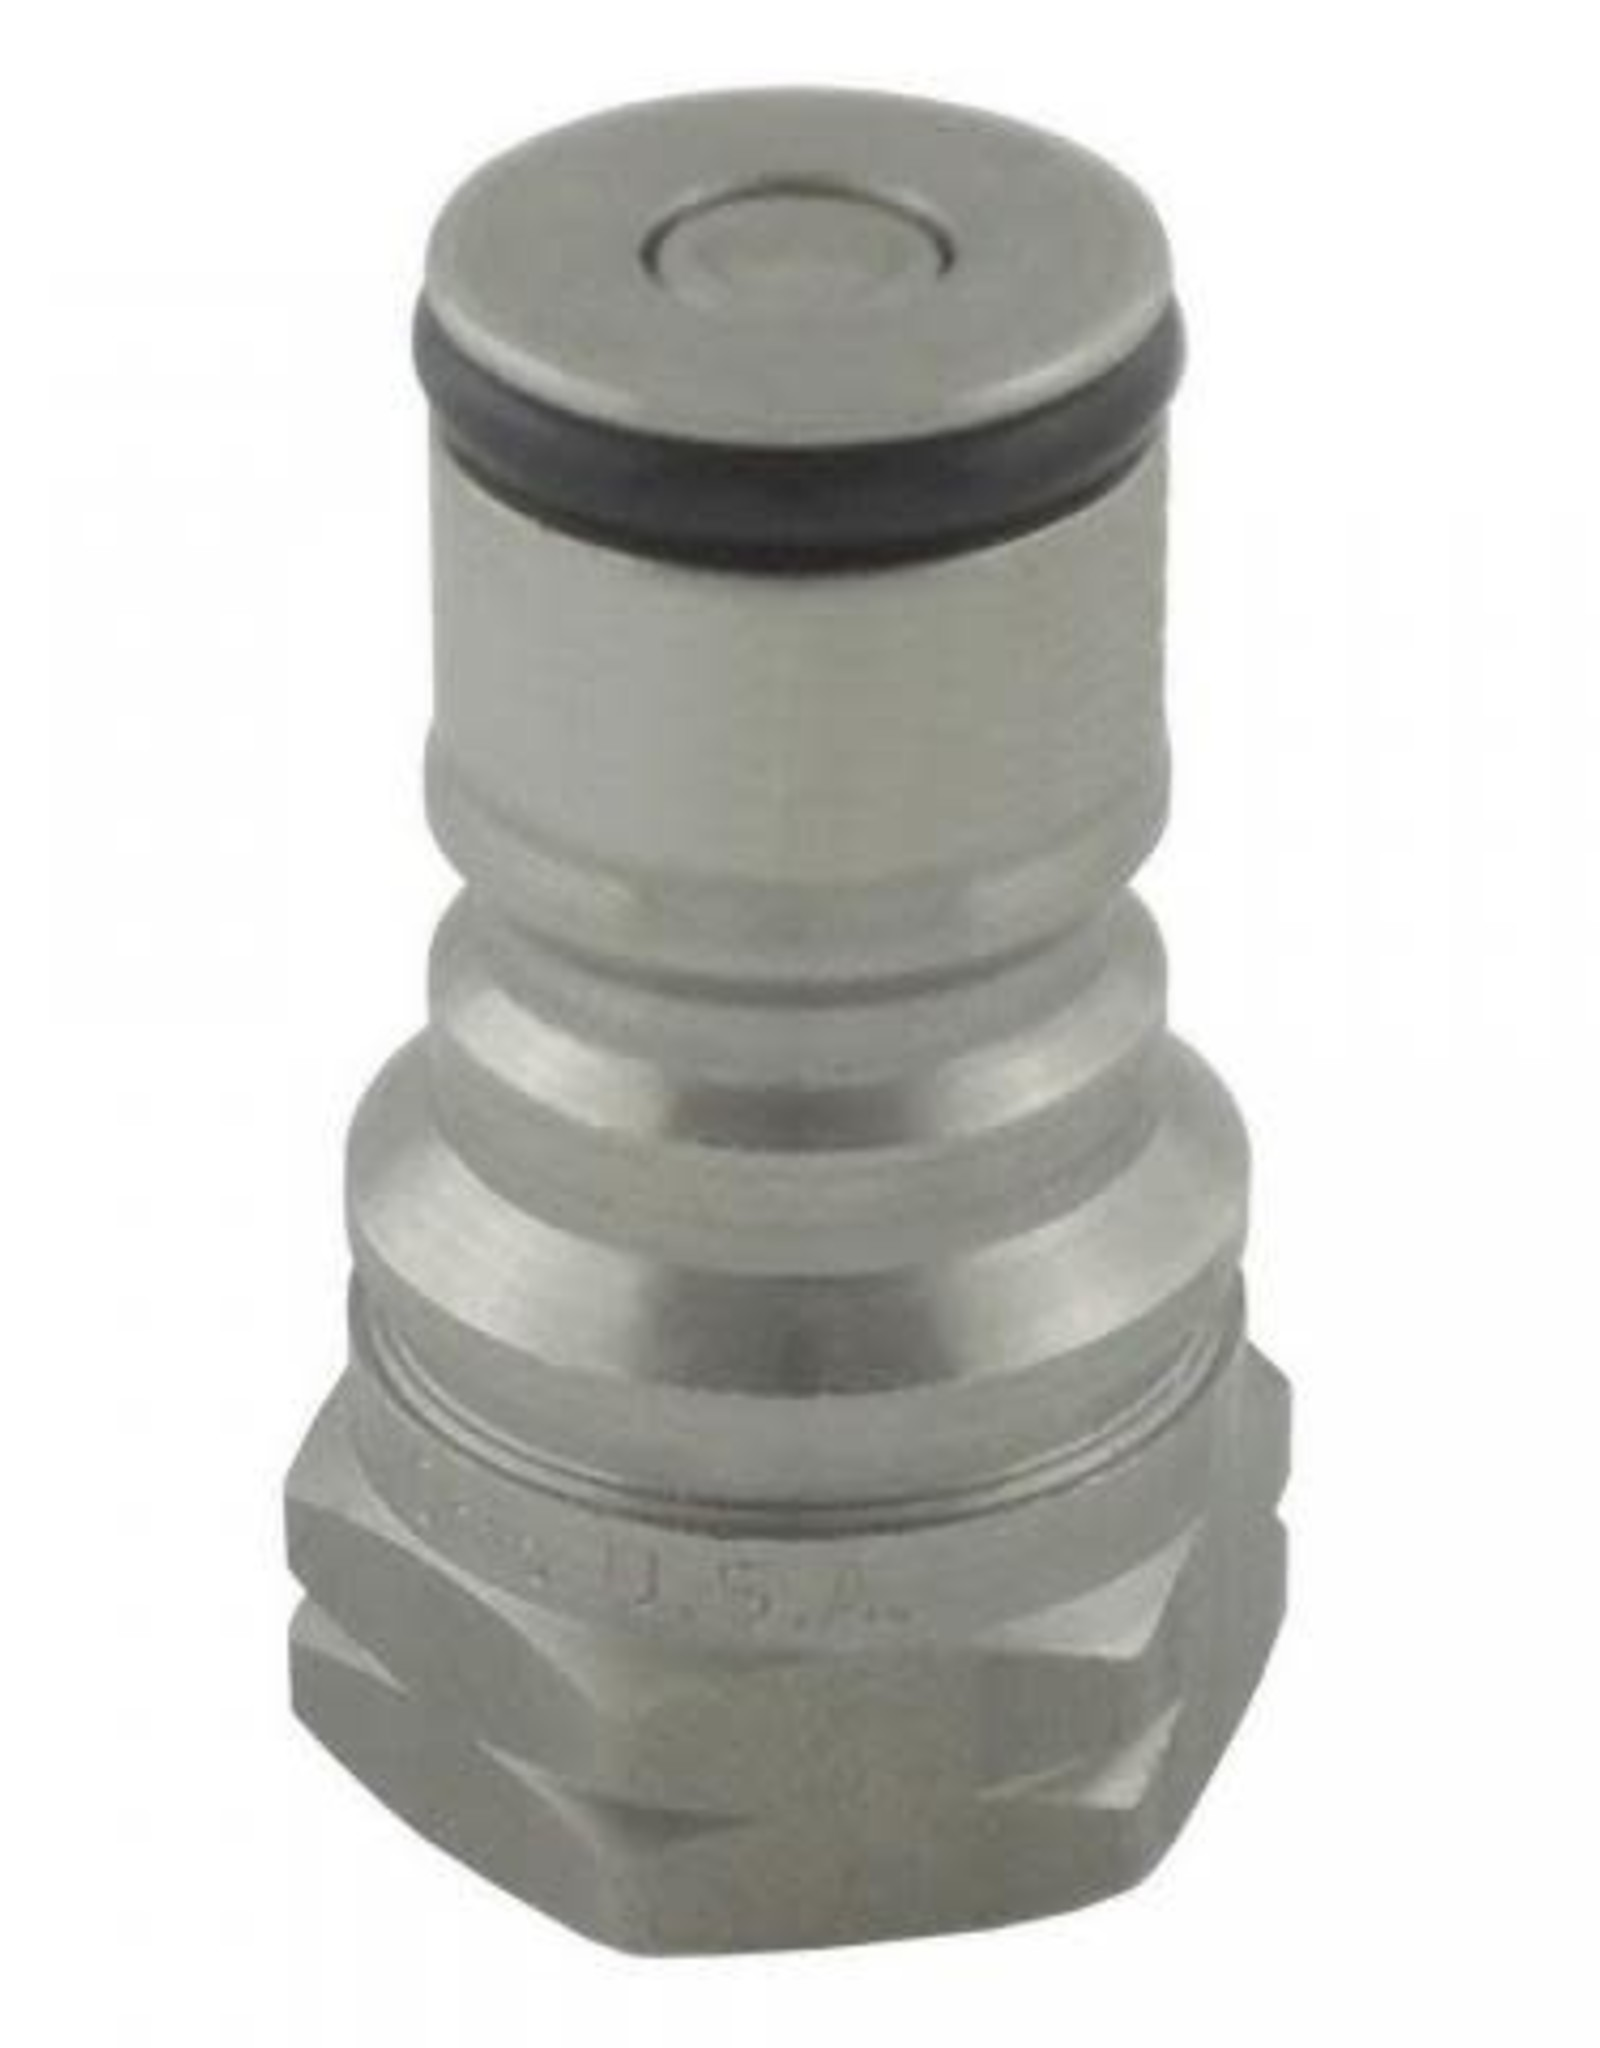 BODY CONNECT-Gas Ball Lock Tank Plug